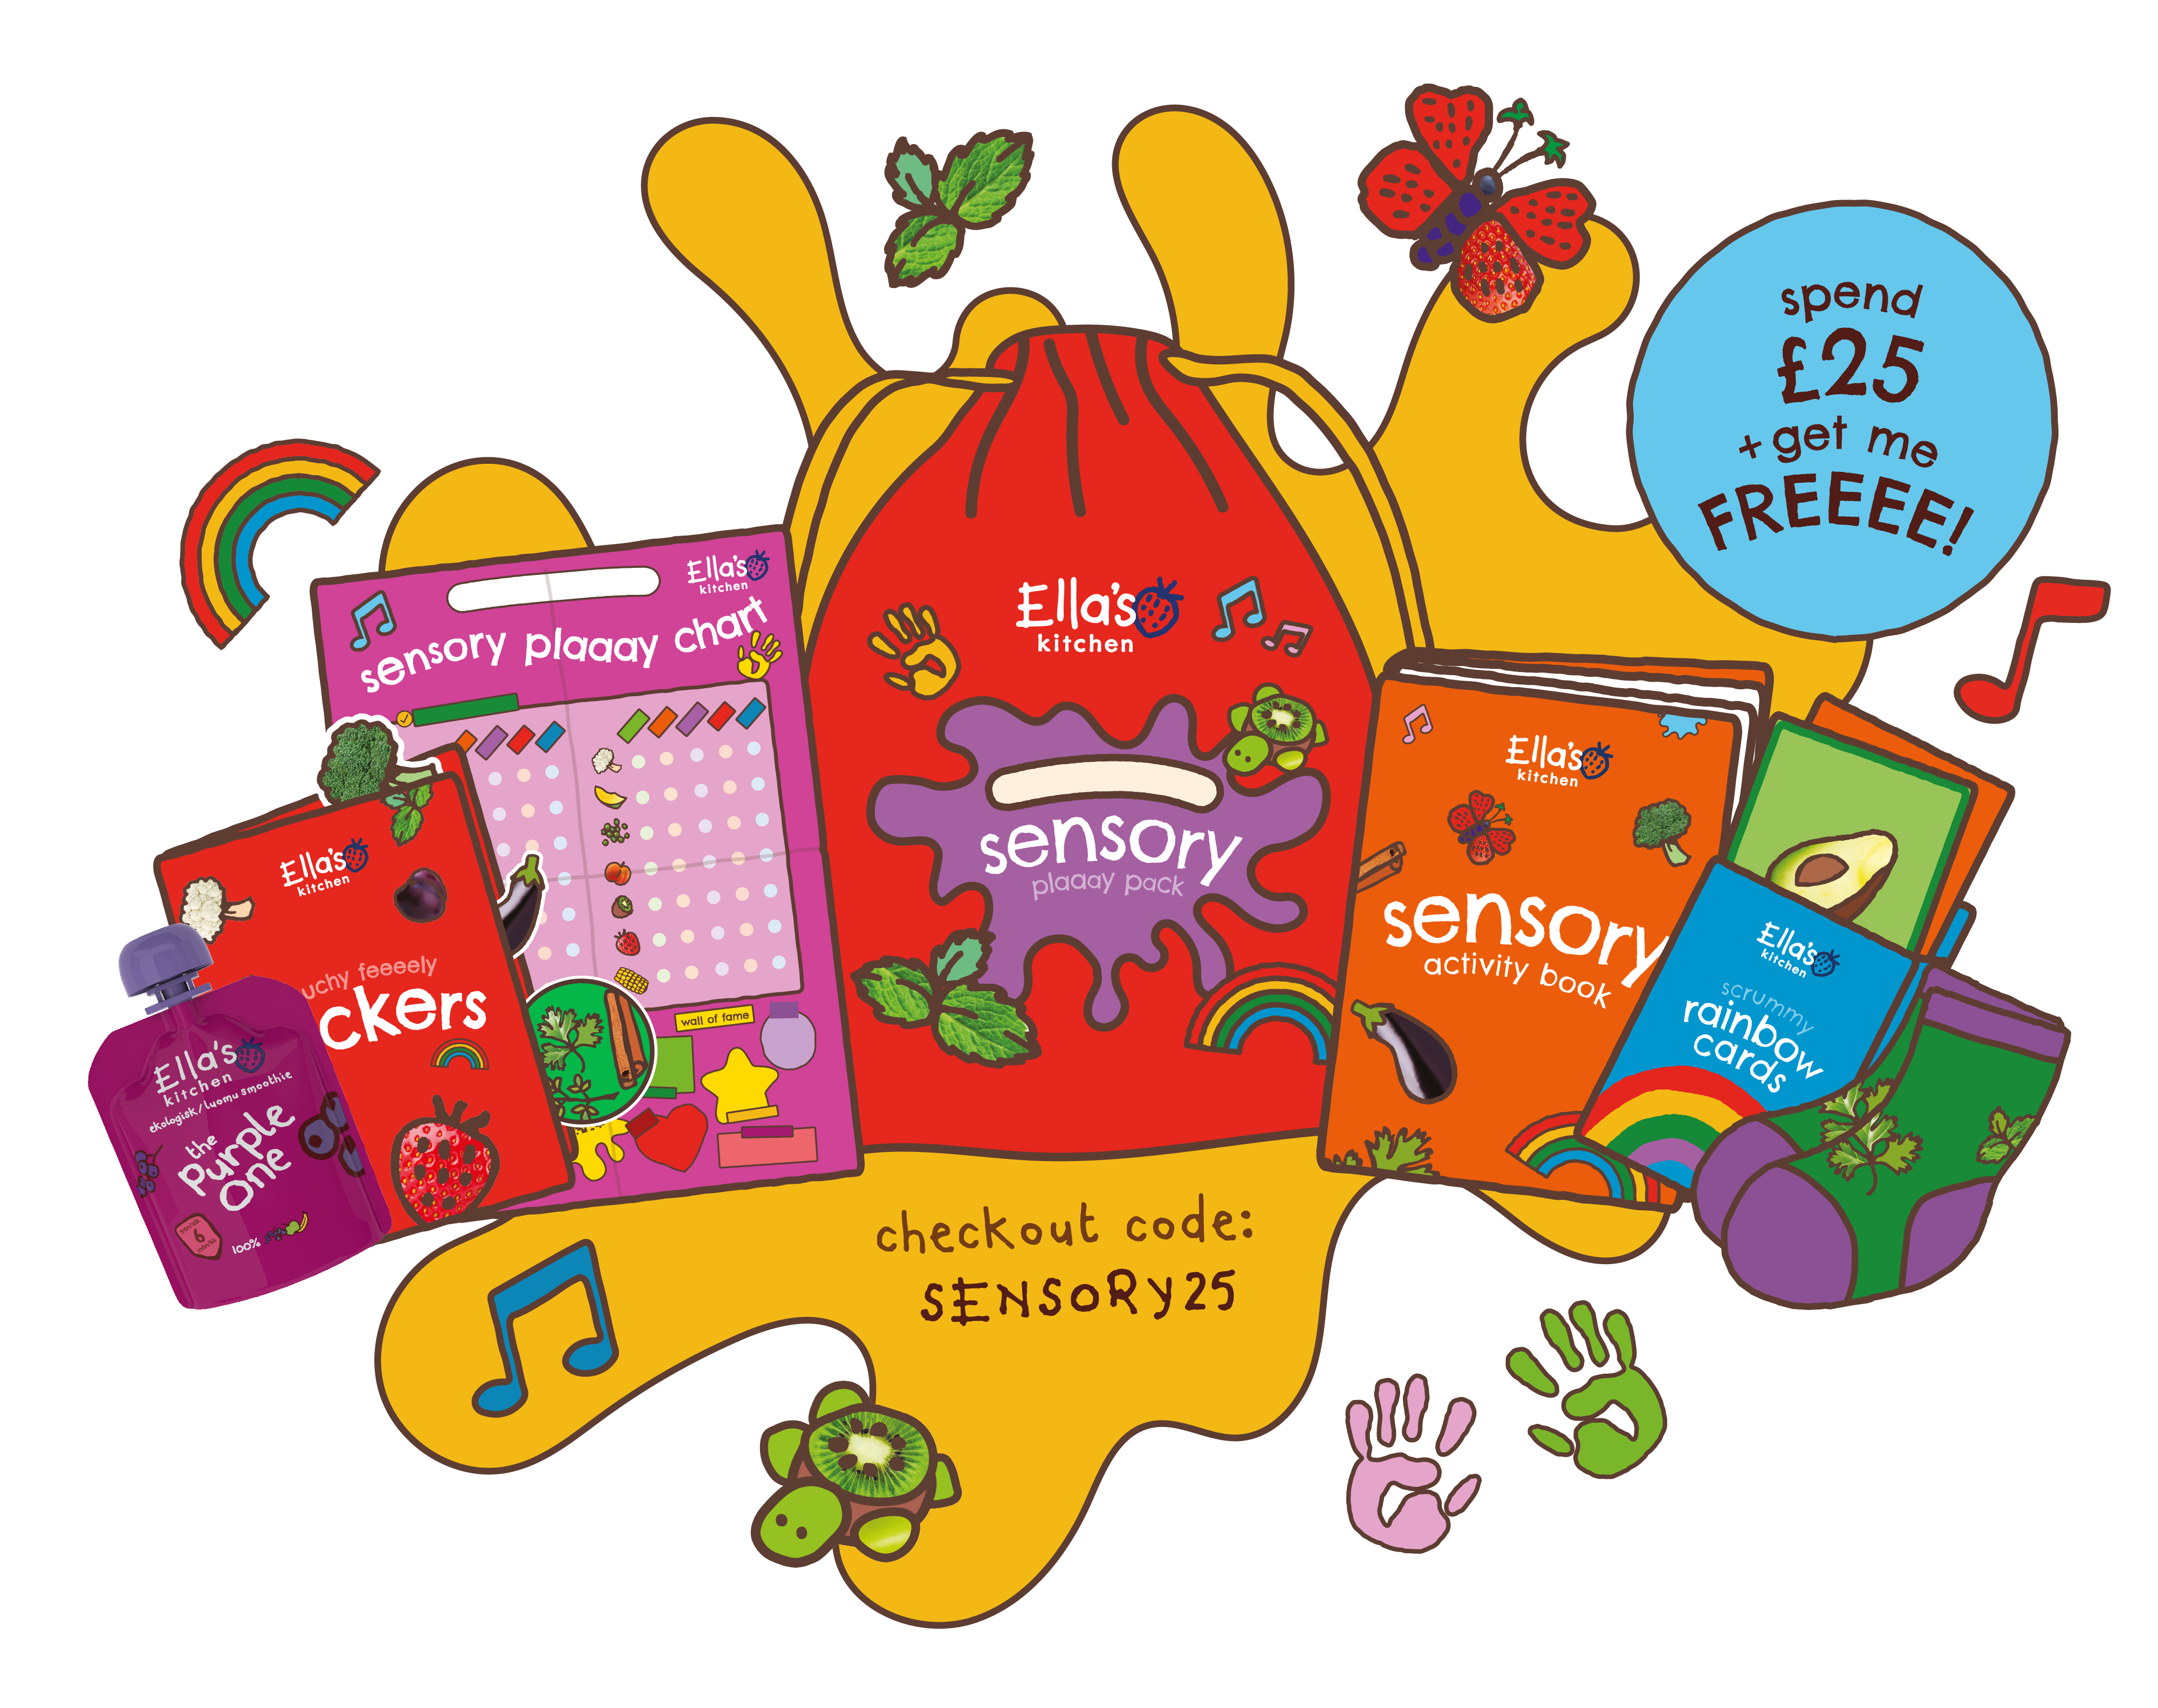 Sensory play pack campaign